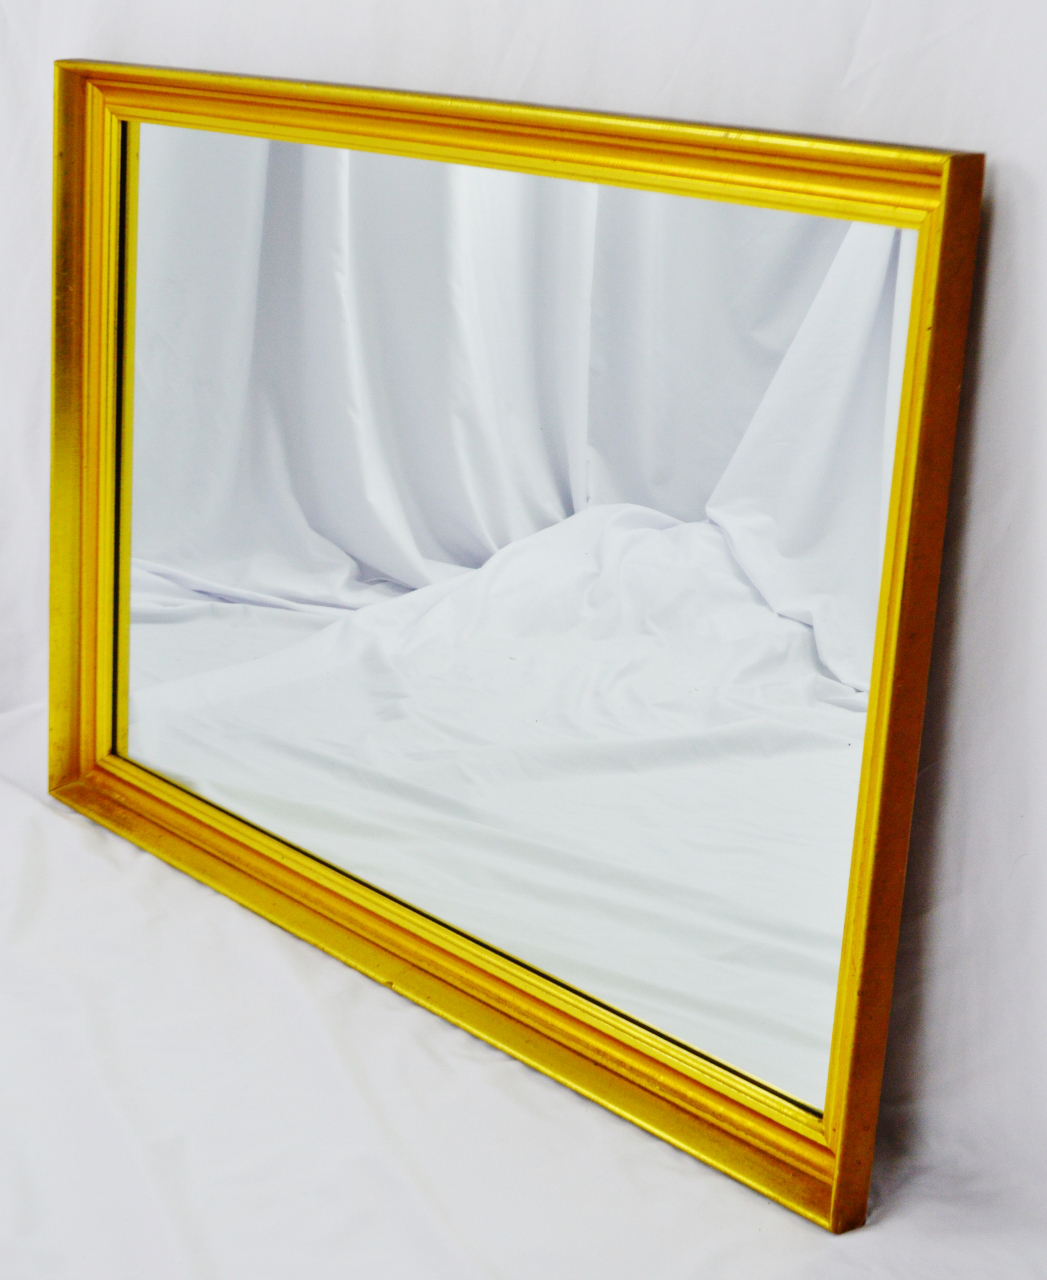 Vintage Bassett Furniture Gilt Framed Wall Mirror Condition Consistent With  Age And History. Please Use